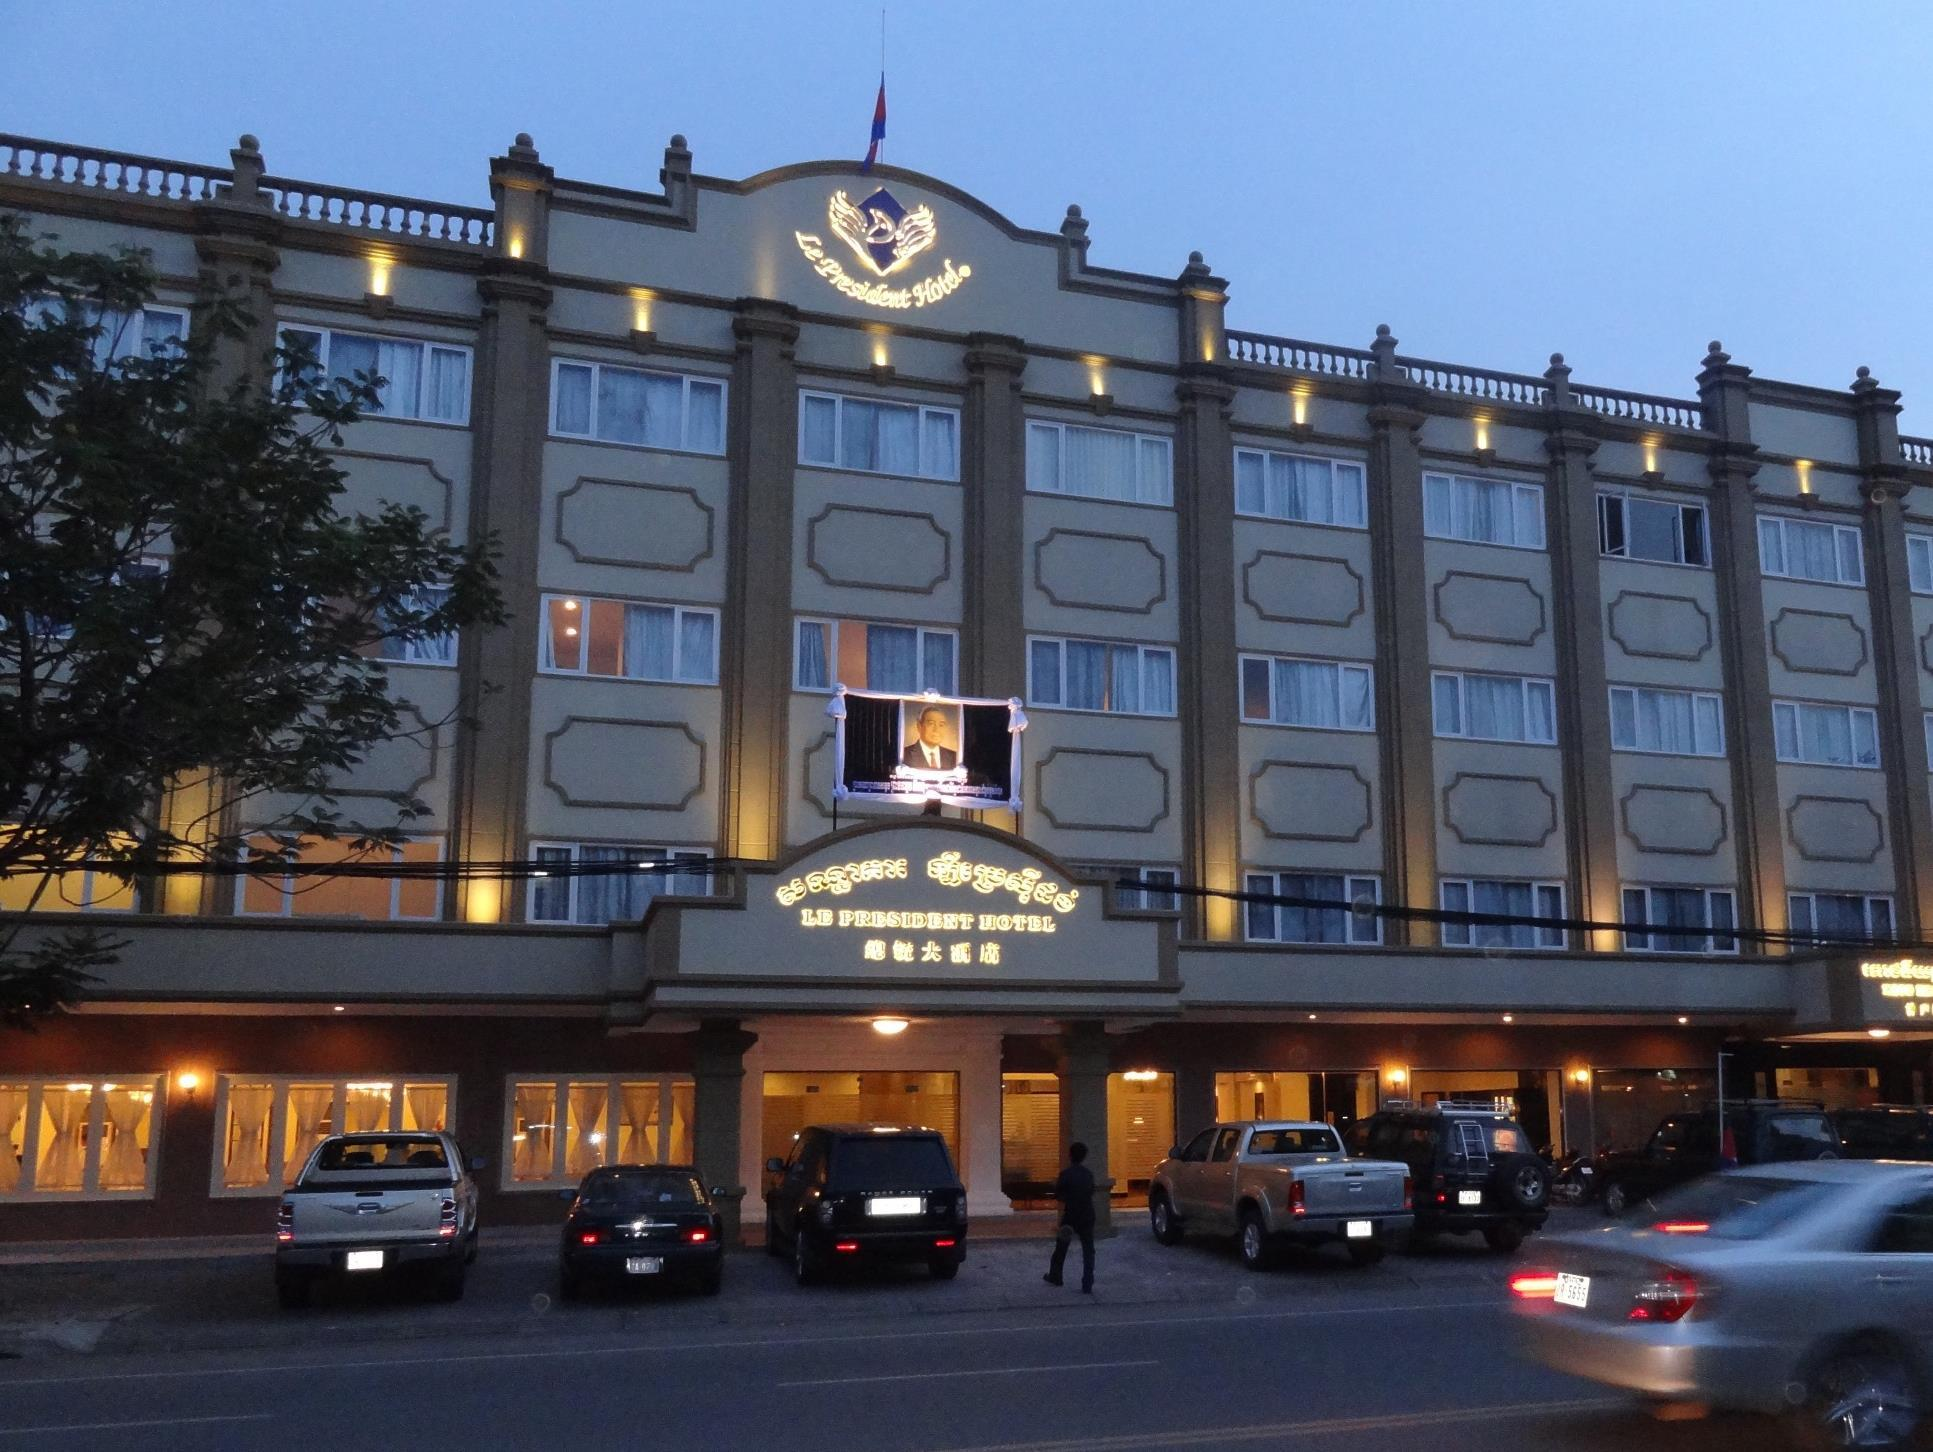 Le President Hotel